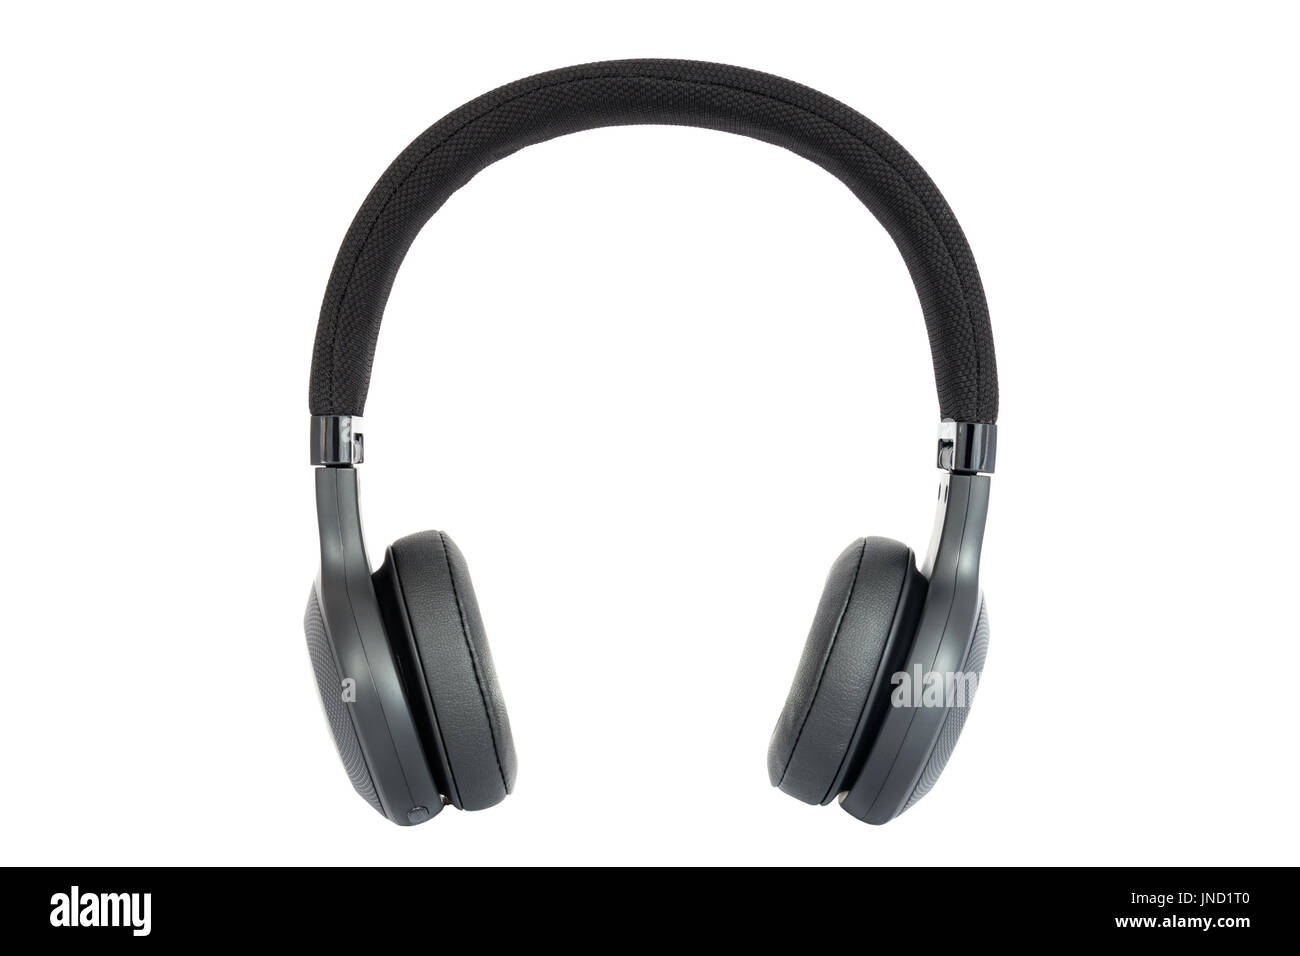 Headphones. Isolated black headphones. Front view. Isolated on white background - Stock Image